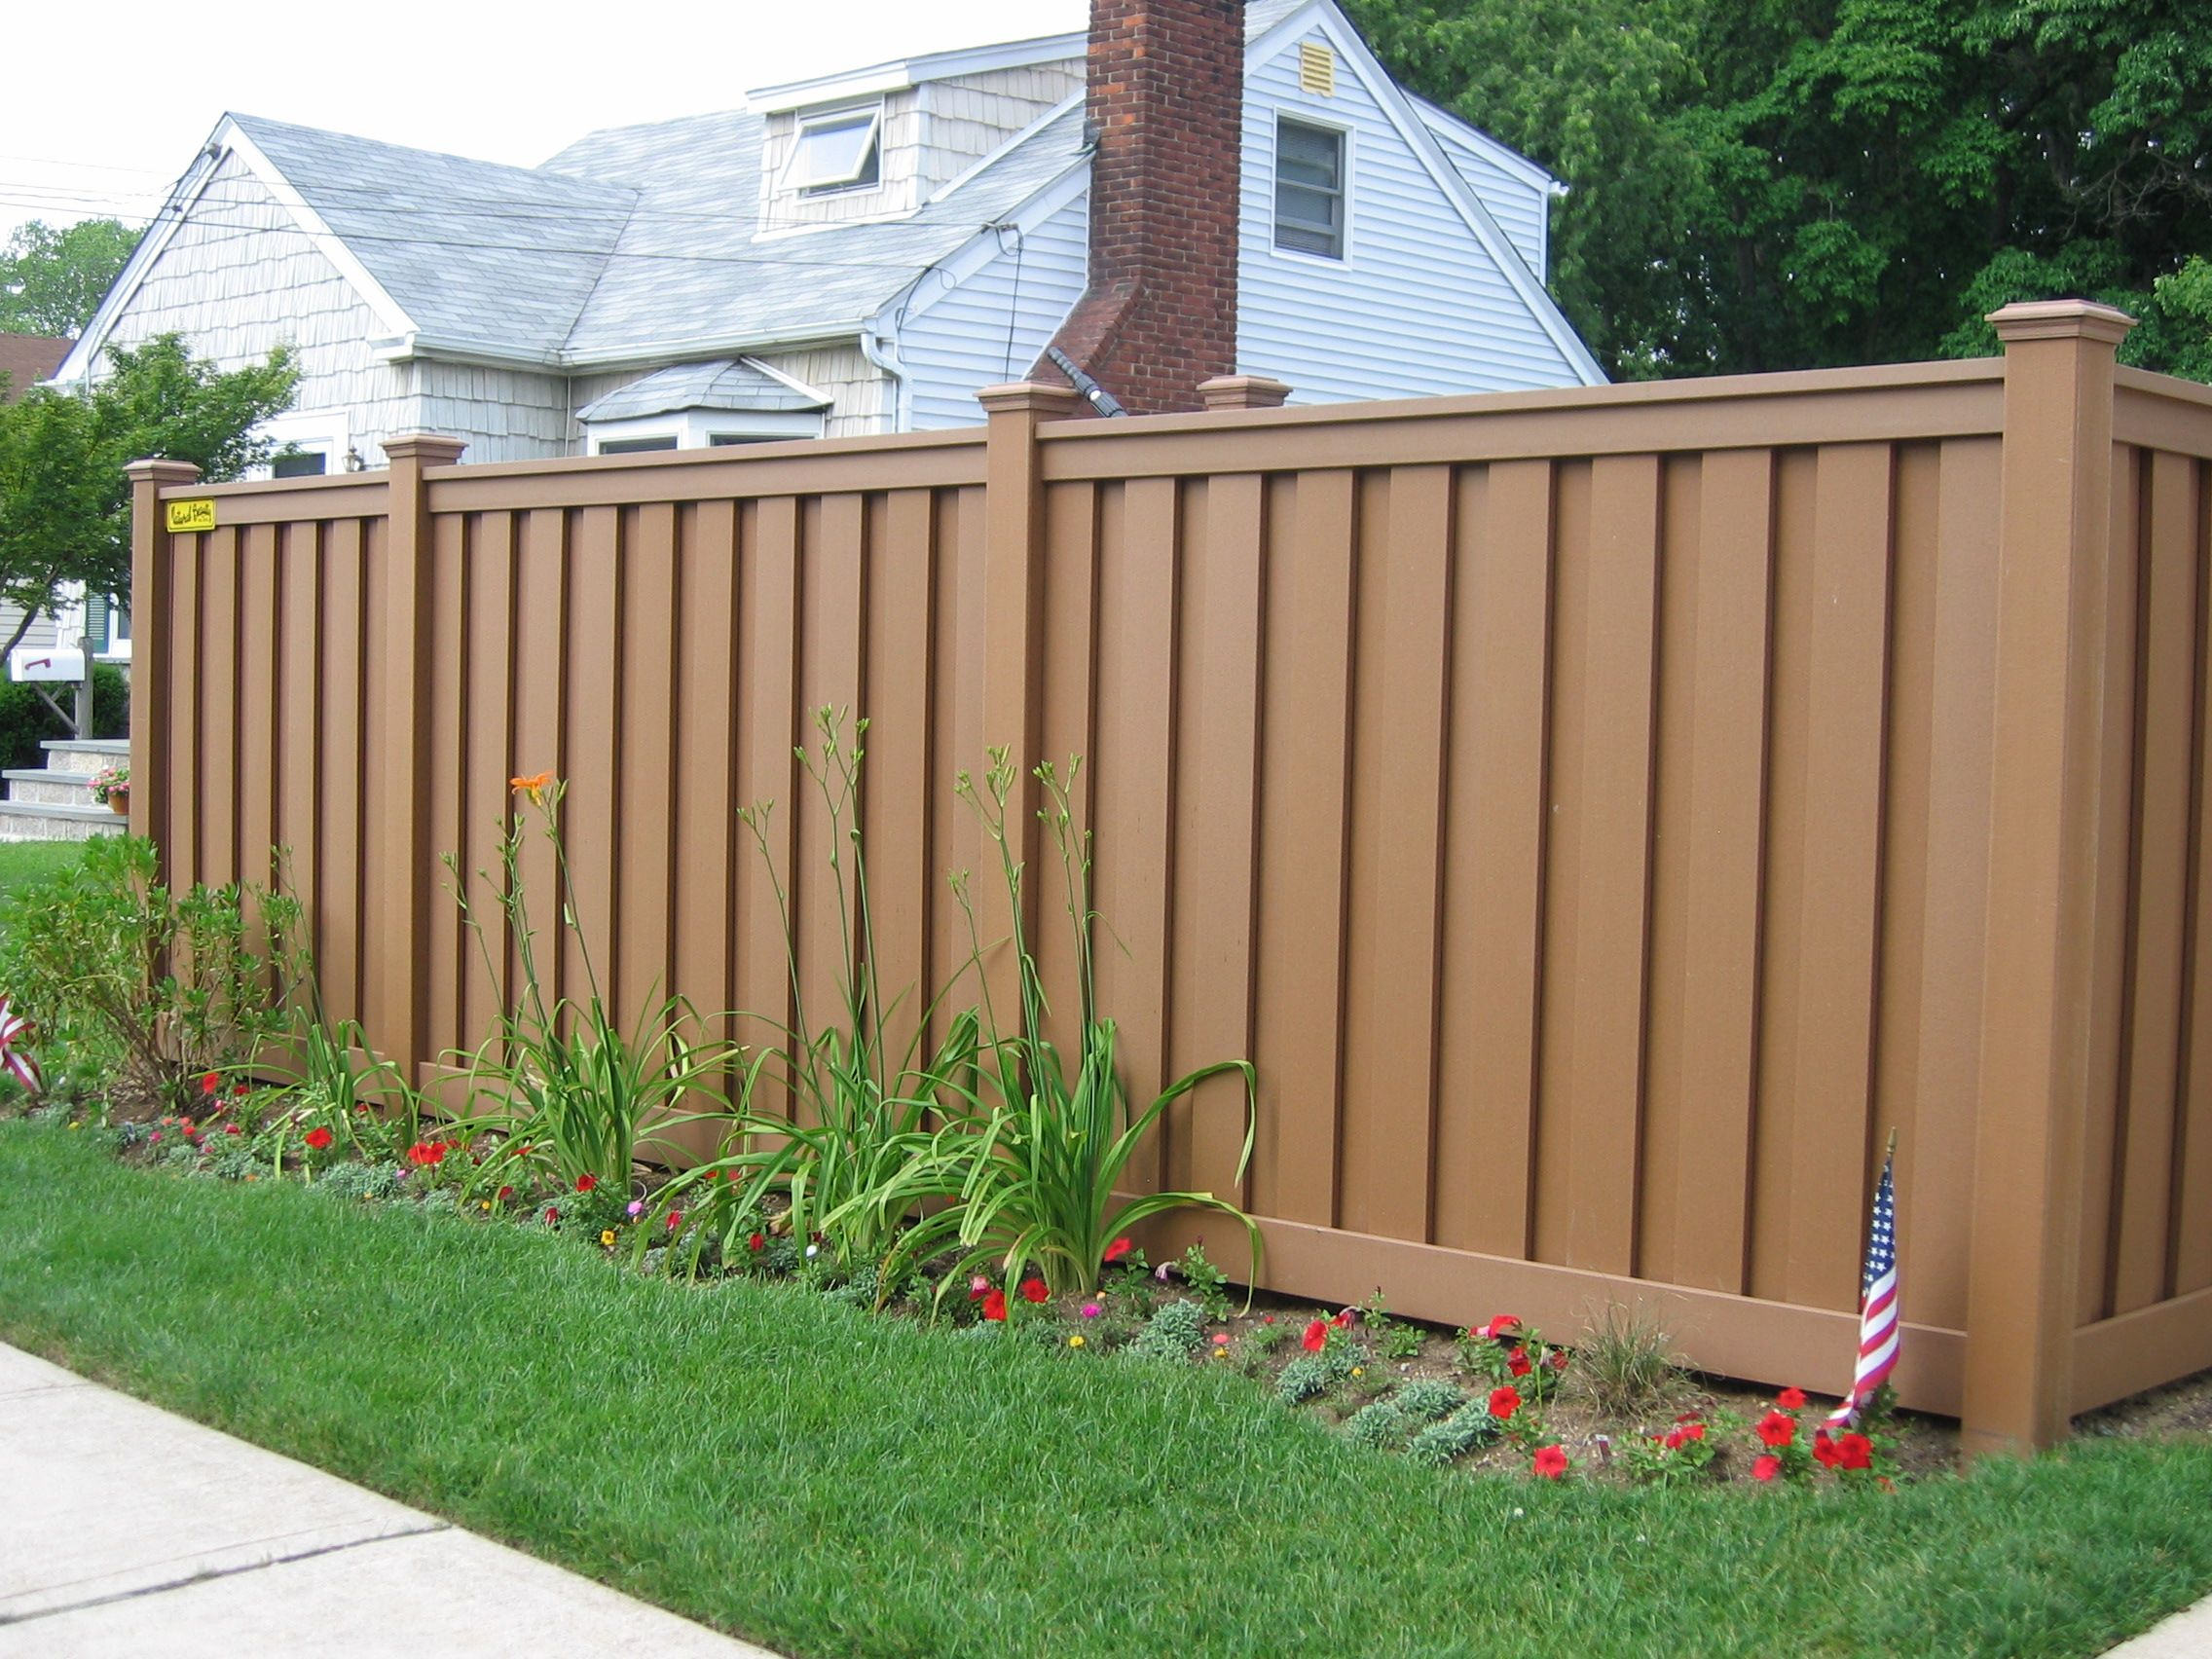 Anti uv outdoor wood plastic composite garden fence for Good neighbor fence plans